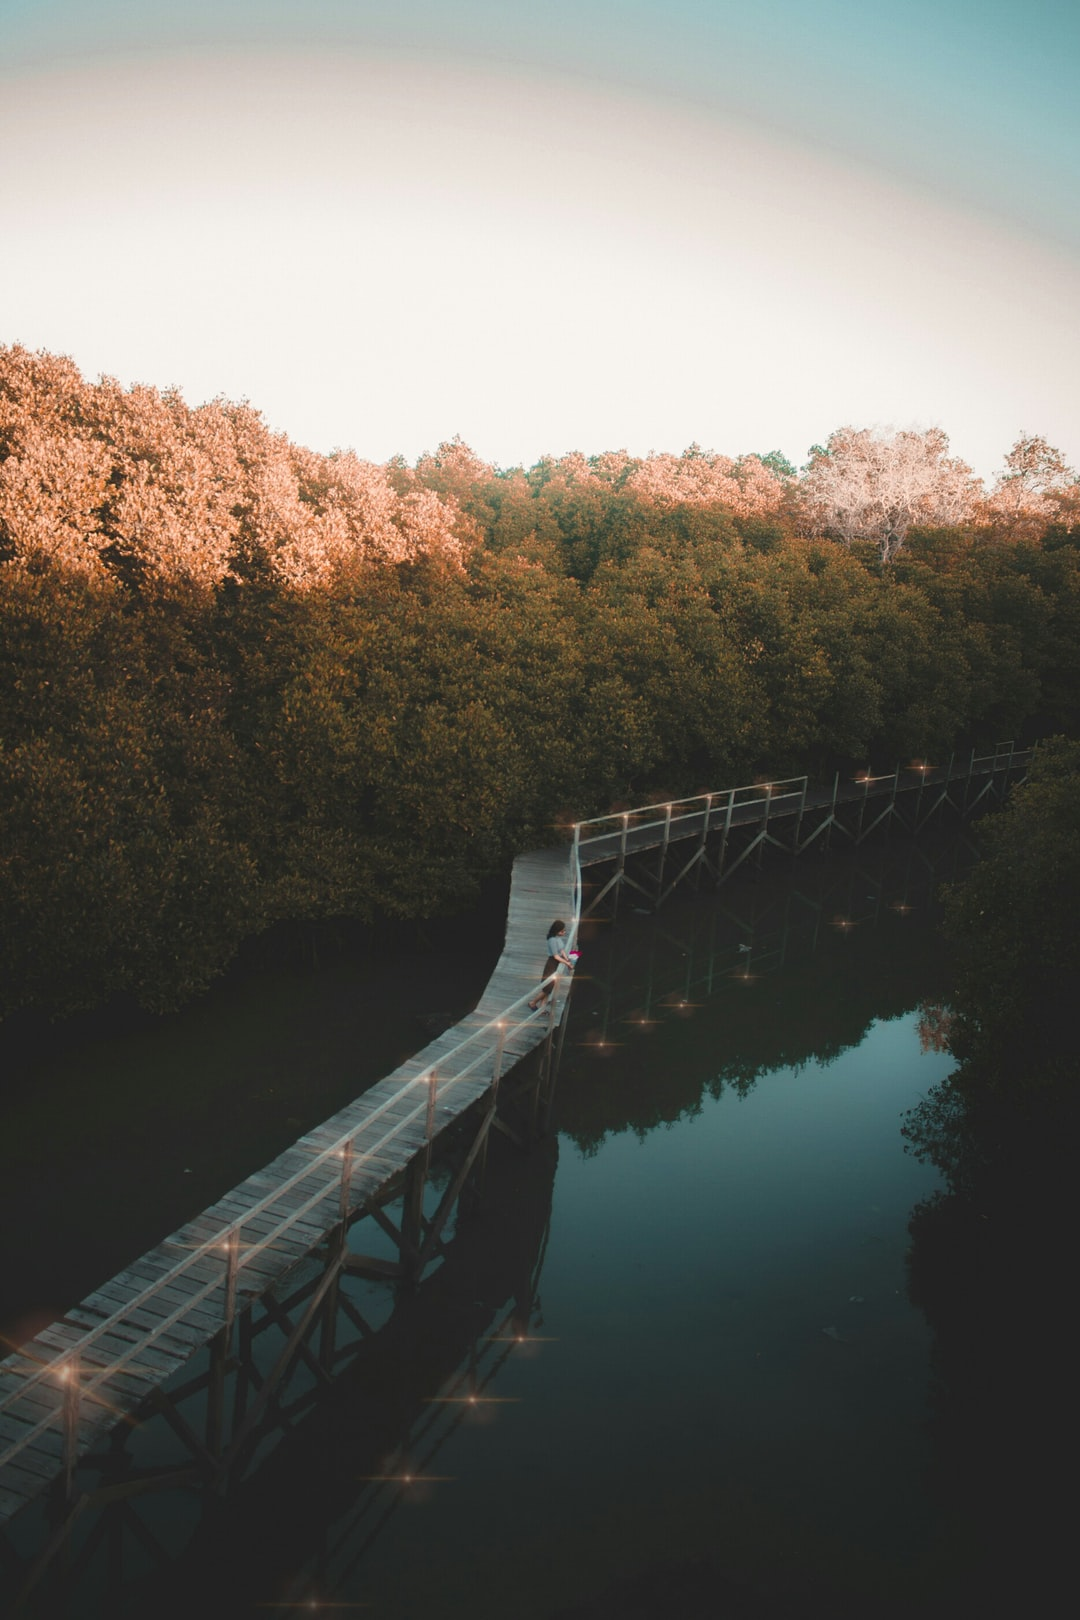 My girlfriend and I was looking for some cool photo on the edge of Denpasar City,  Bali, Indonesia. After searching and Googling, finally we found this incredible. We arrived at the Bali Mangrove forest at 5.00pm, it was such a great moment to take golden sunset on the tower in this mangrove forest.  The photo makes me feel relaxed.